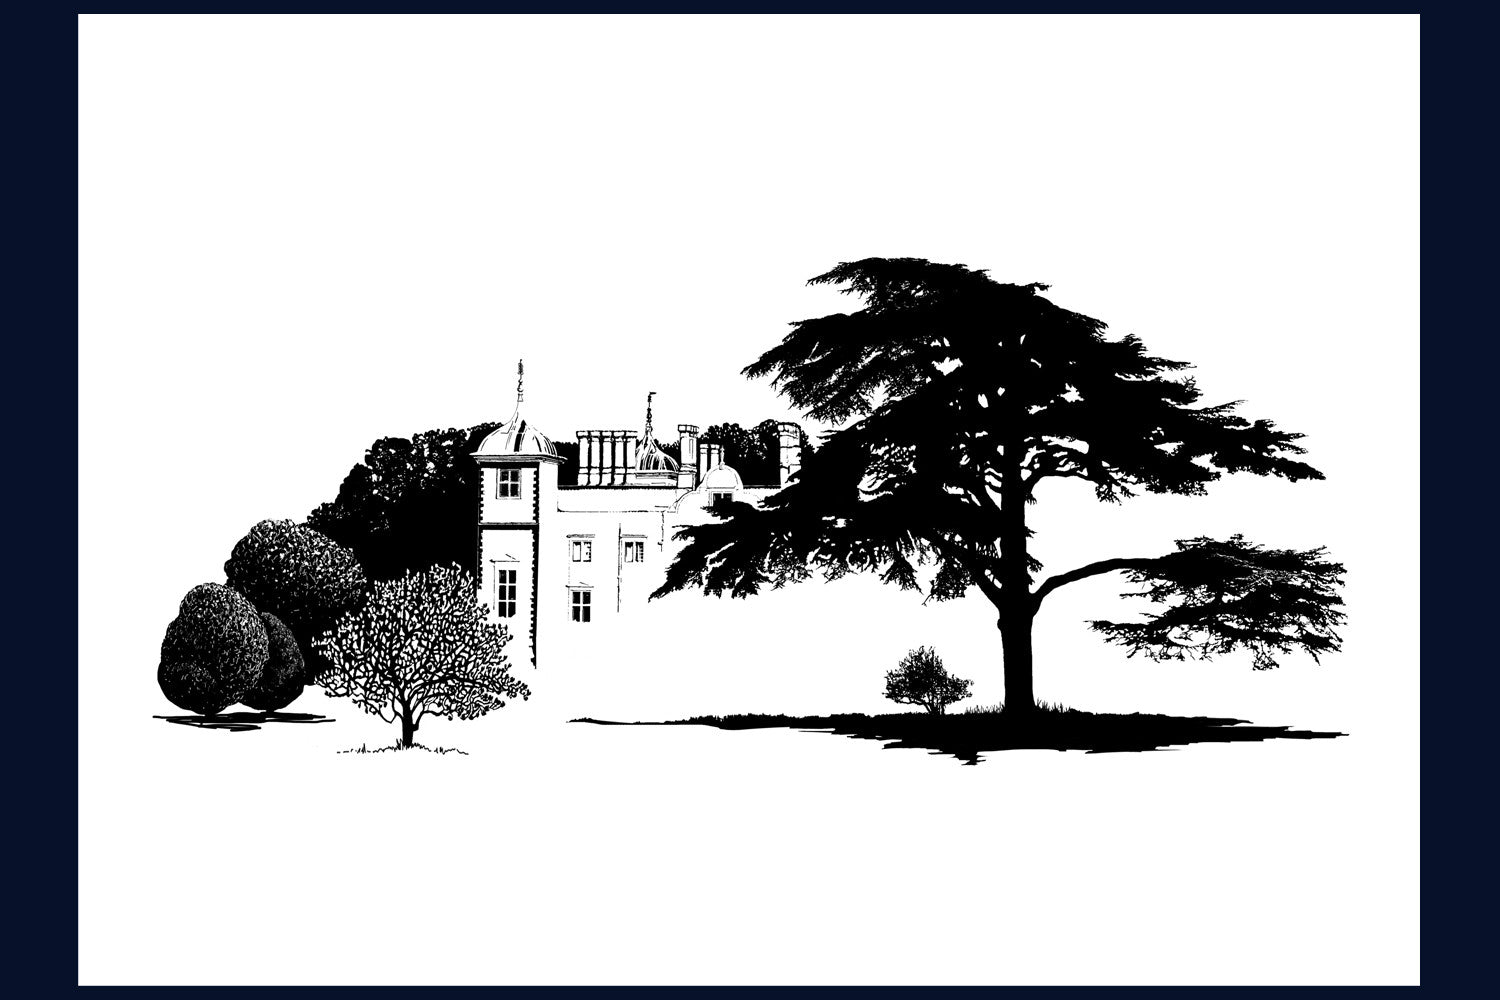 Arboretum Collection 'Cedar, Blickling Hall, Norfolk' Limited edition (50) Fine Art Print